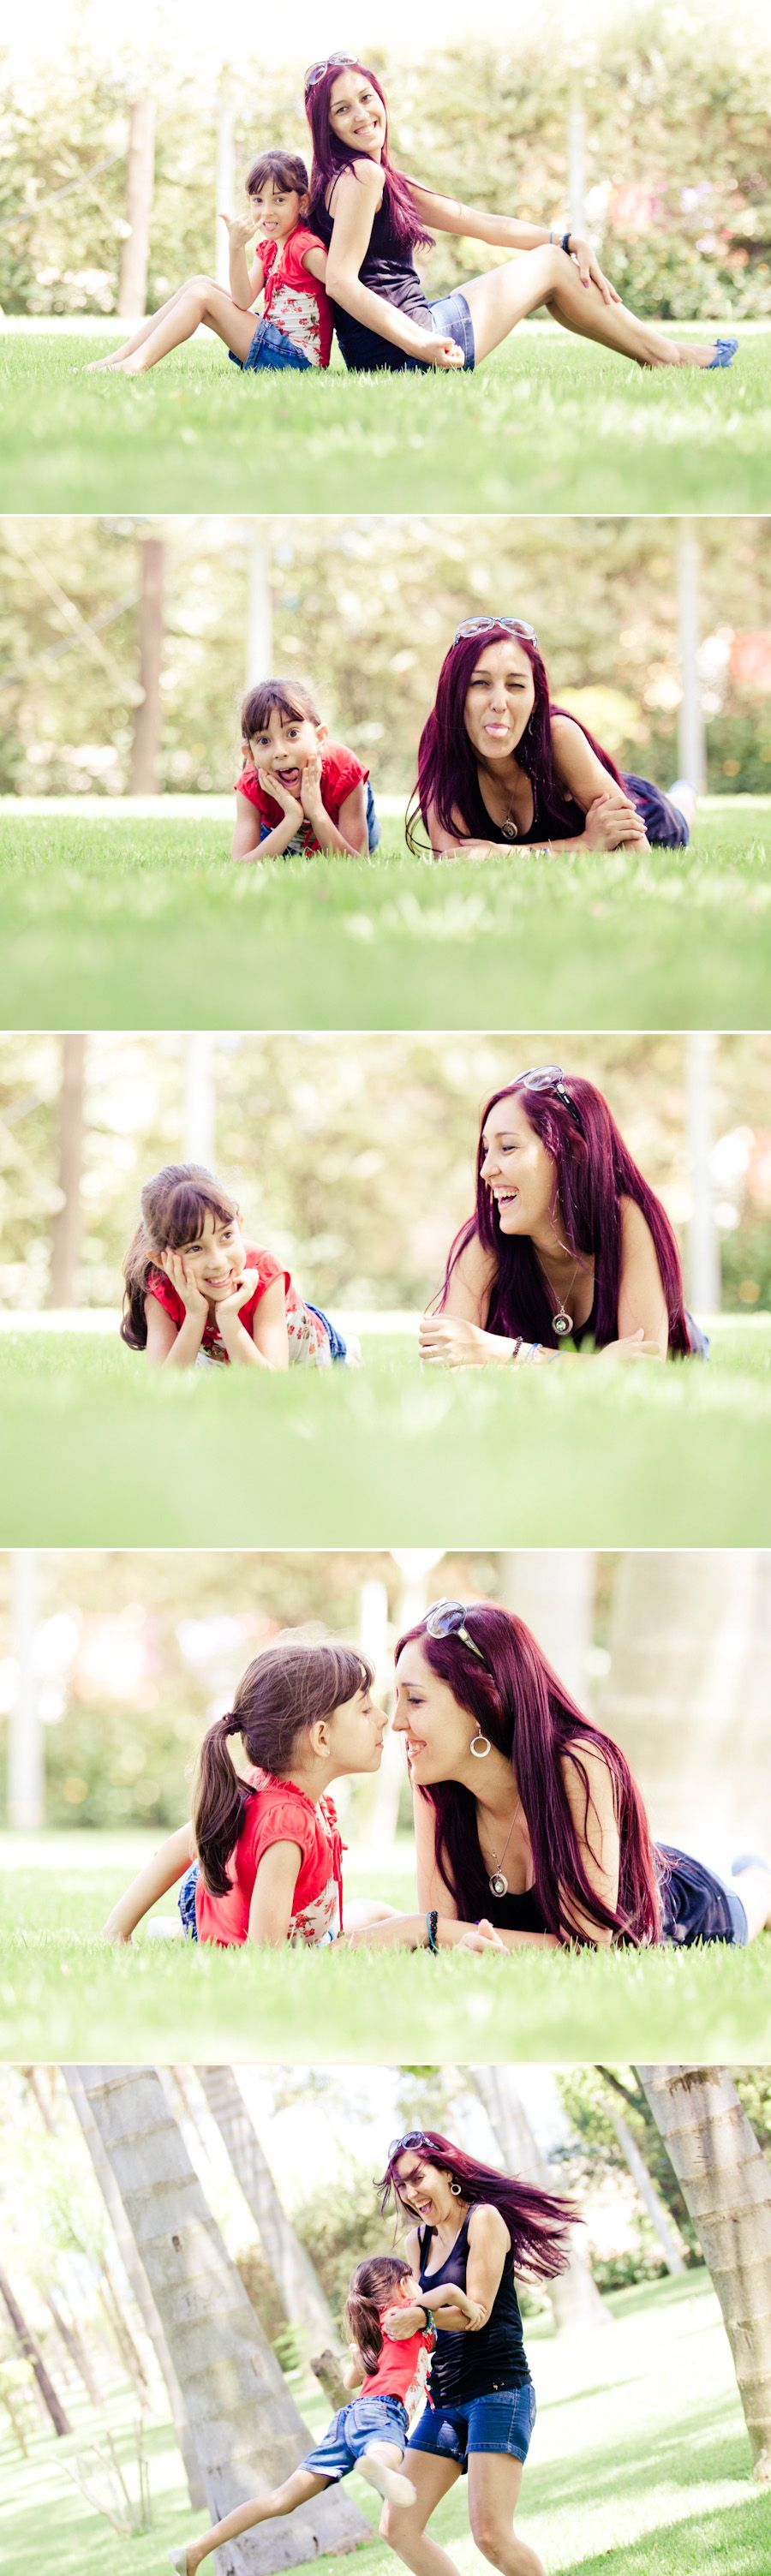 If I ever have a daughter I want to do these pics with her plus I love the mother's hair color!